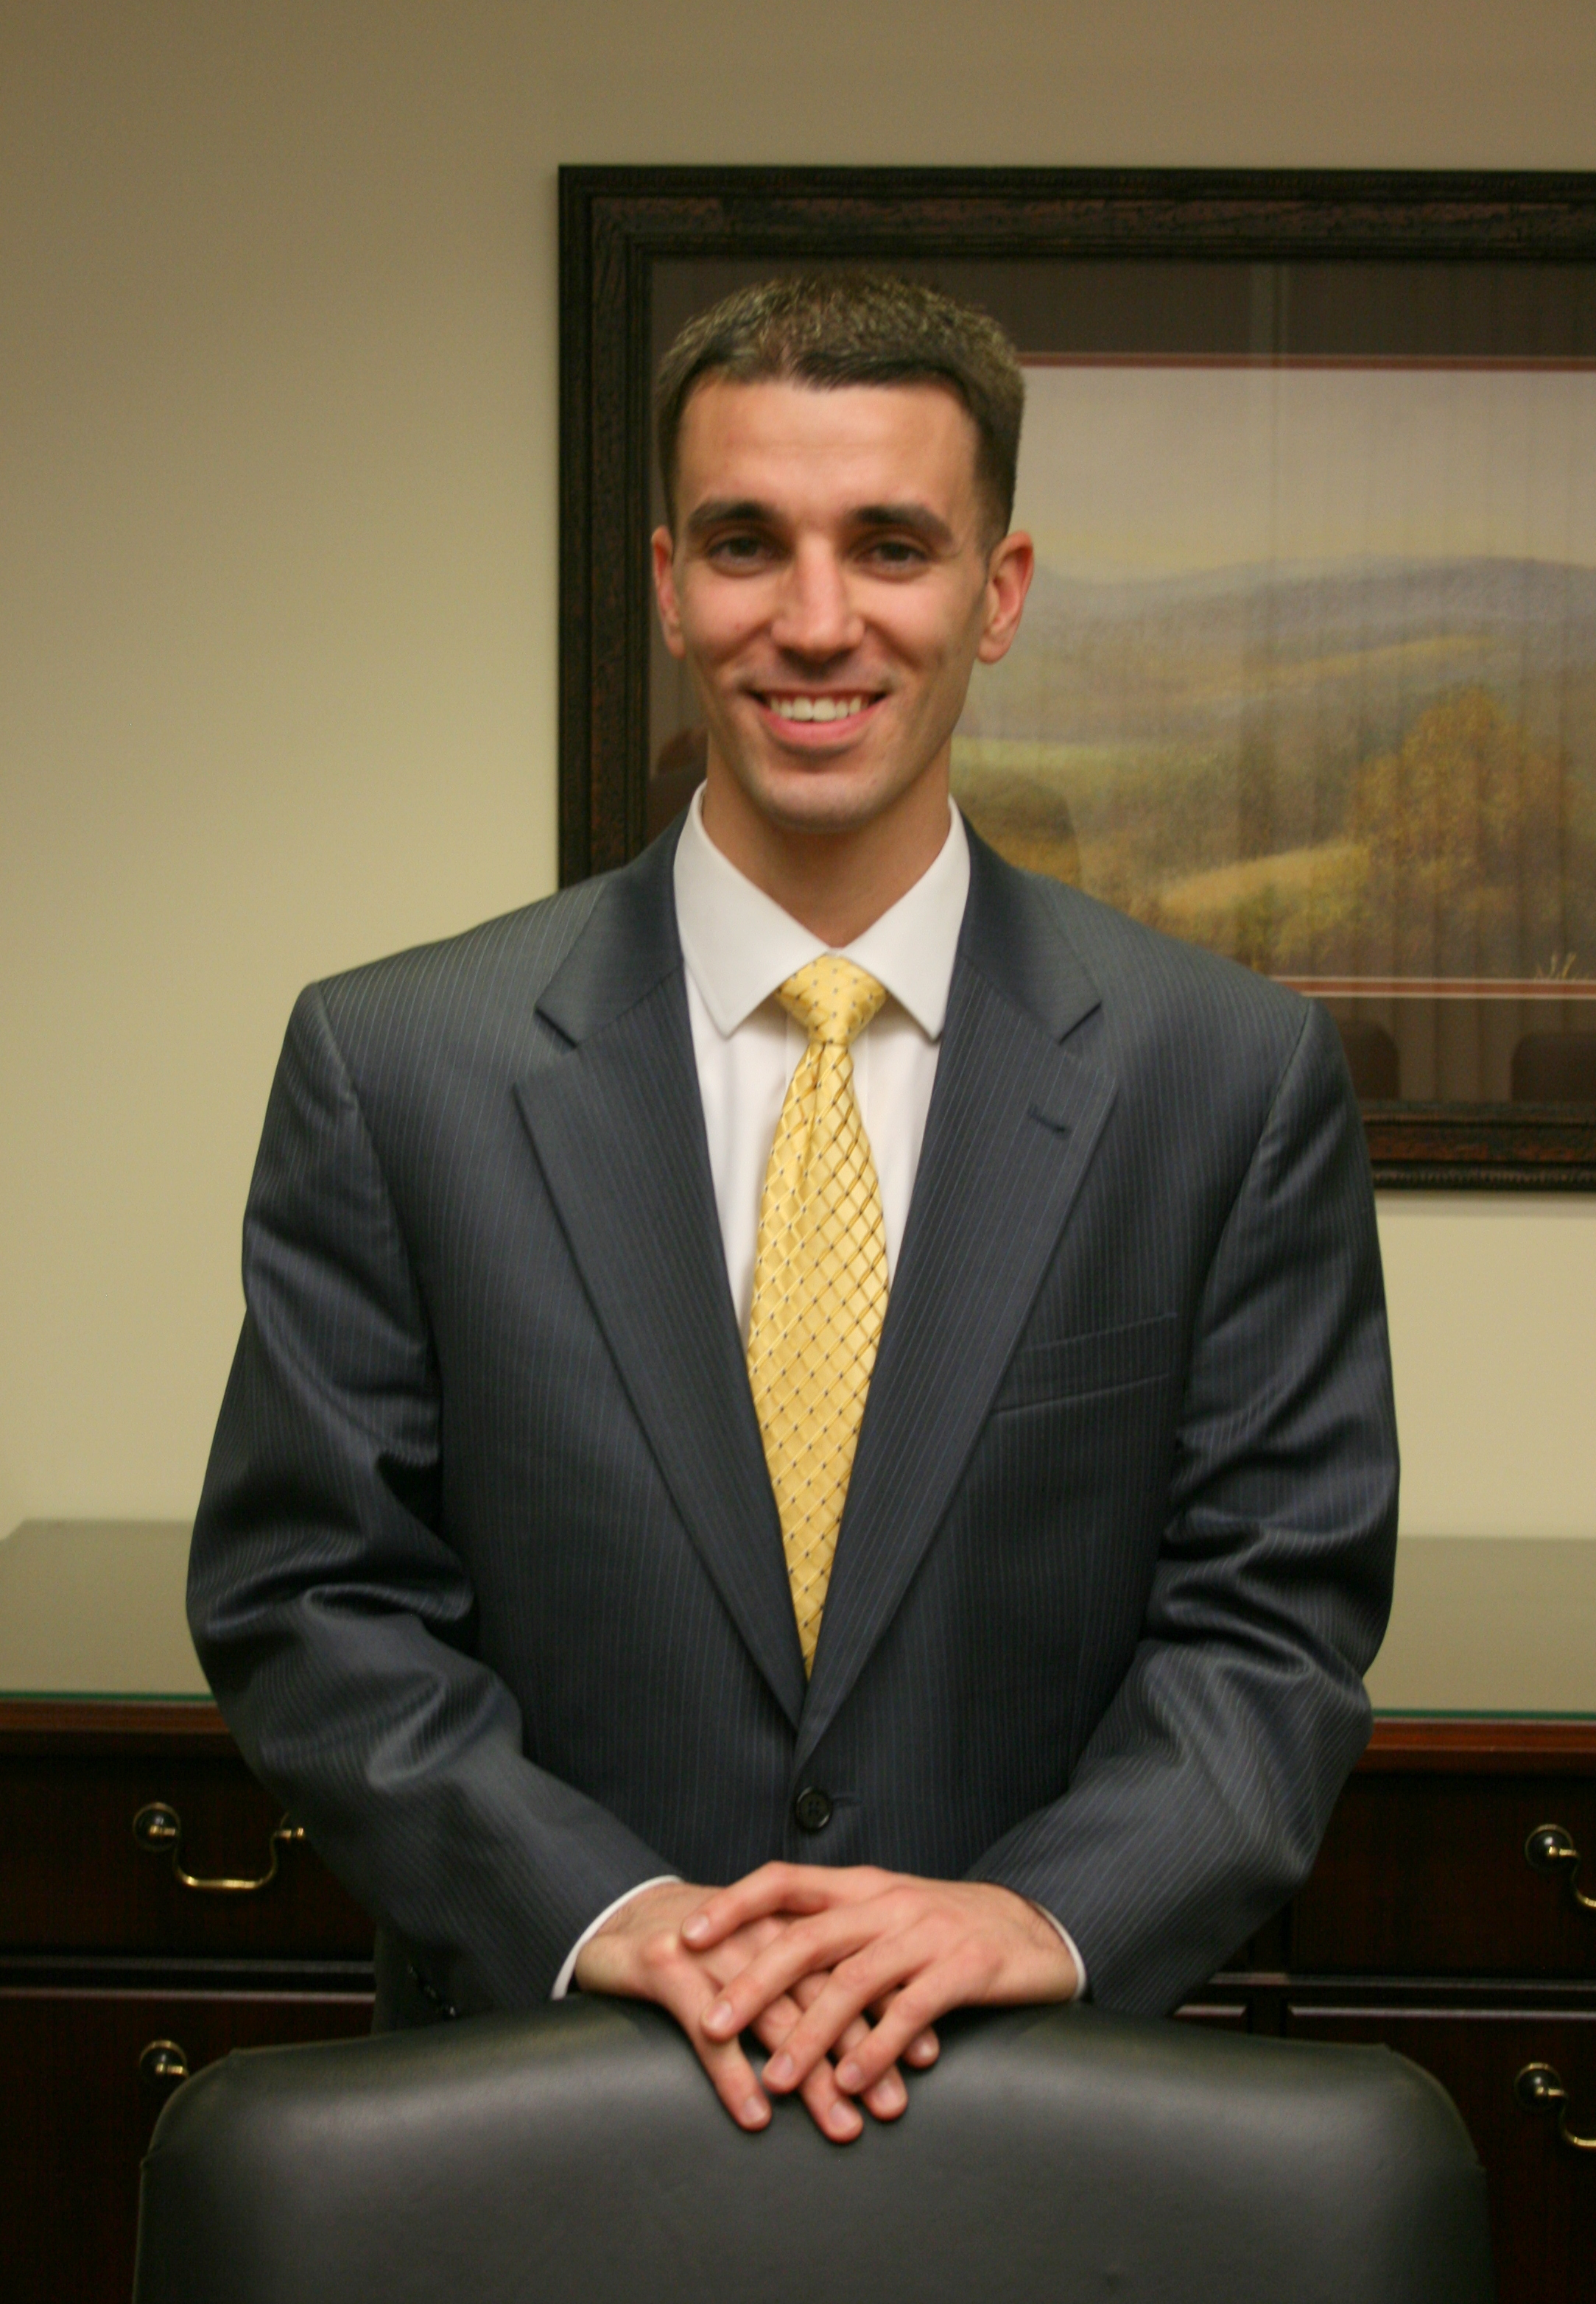 Michael Ryan, financial advisor Atkinson NH